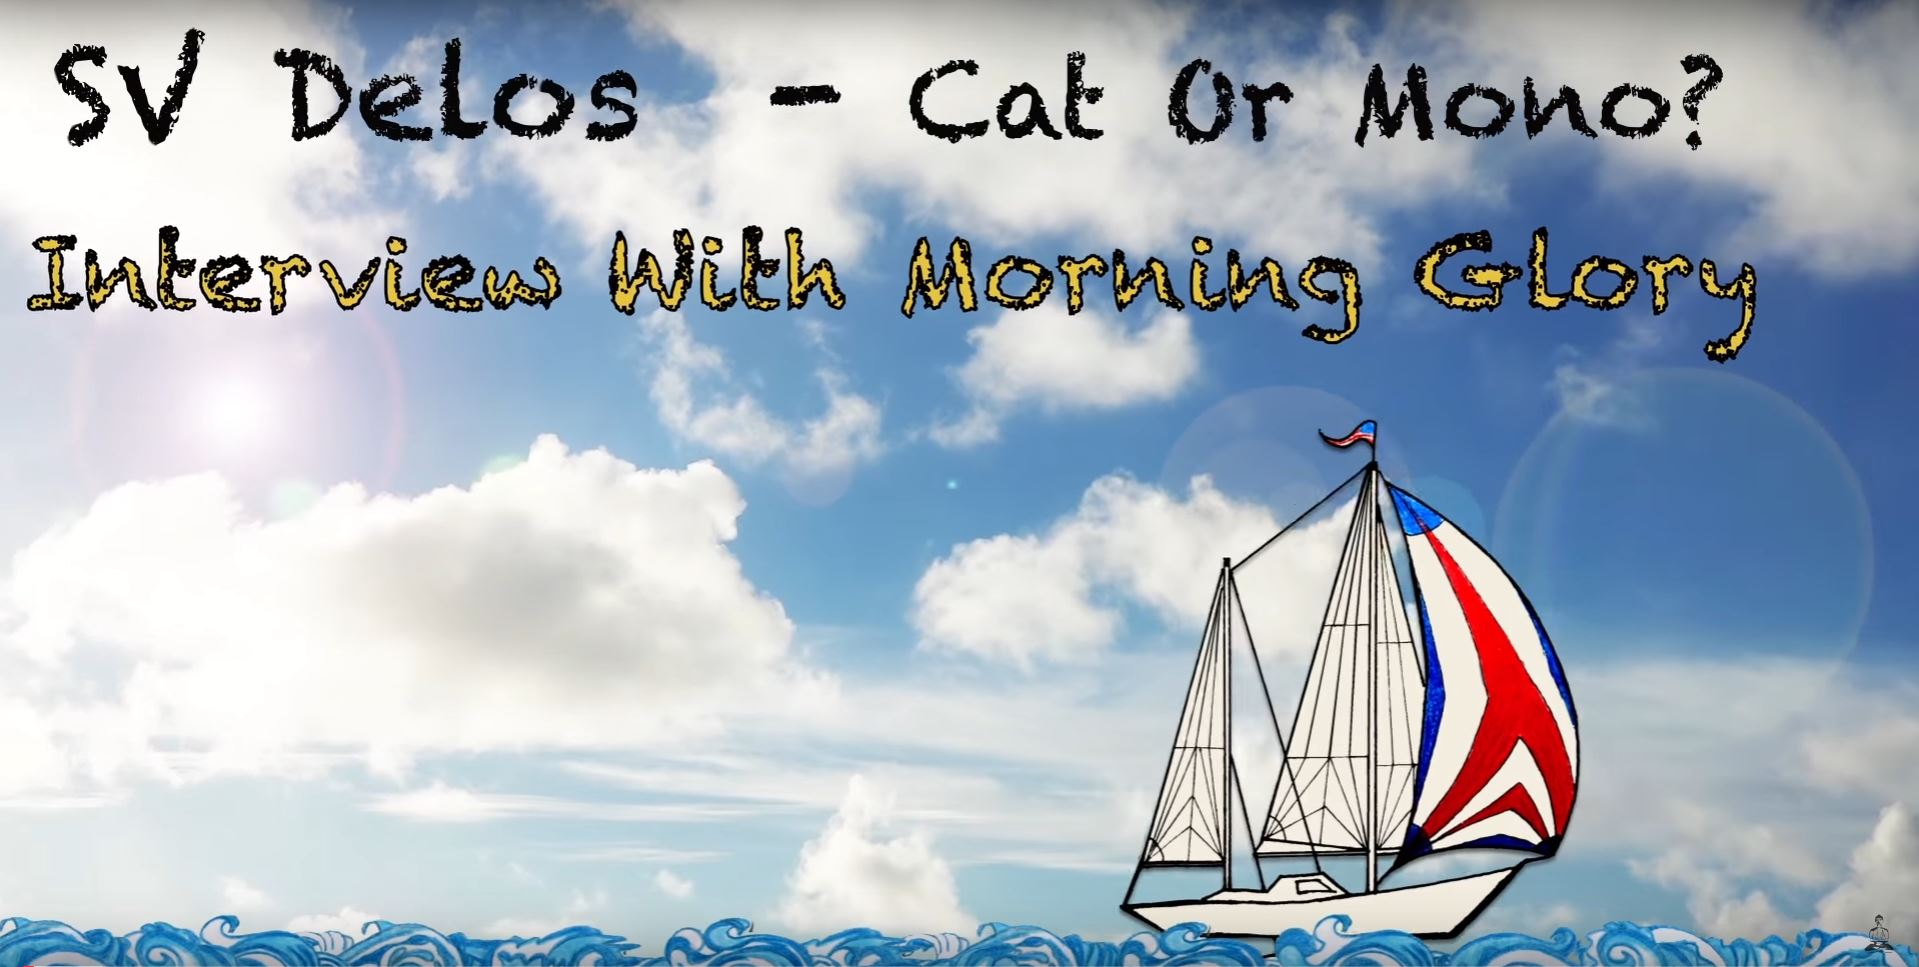 is a catamaran or monohull sailboat better